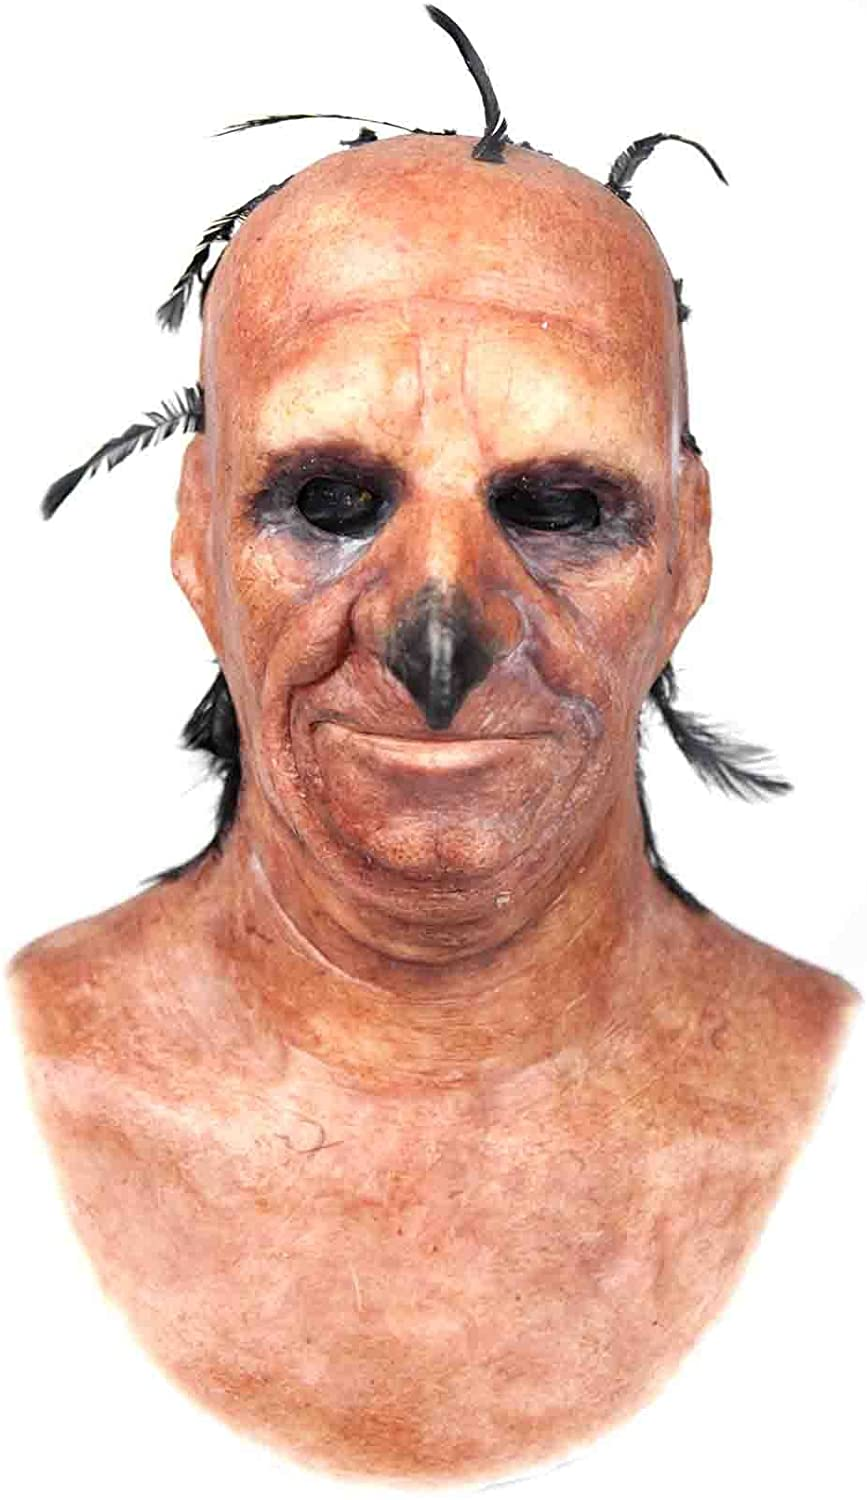 Mr Long Nose Silicone Mask Hand Made, Halloween, Realistic, Realistic Silicone Mask in Skin